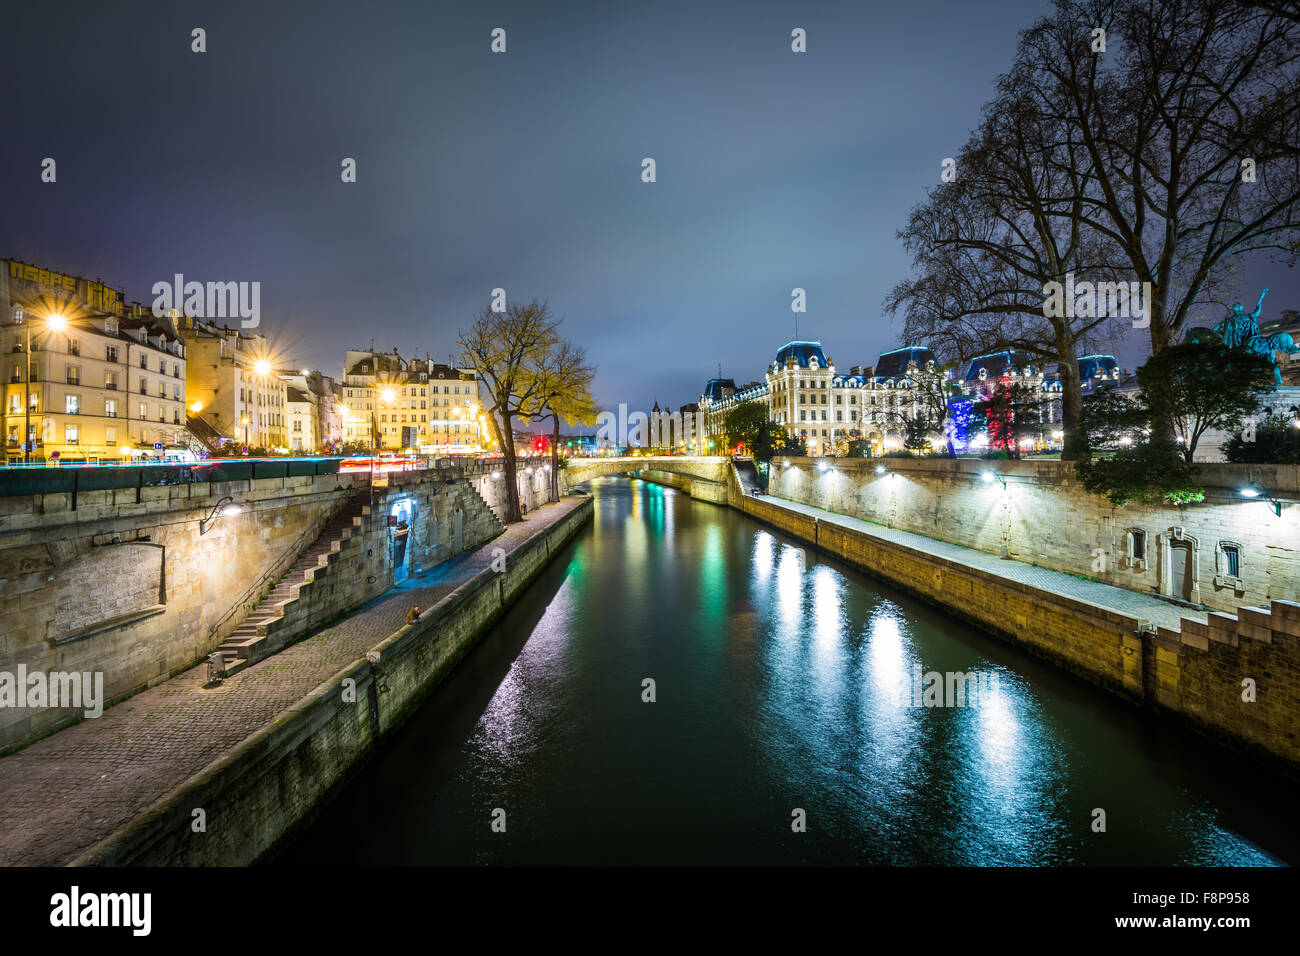 The Seine at night, in Paris, France. - Stock Image